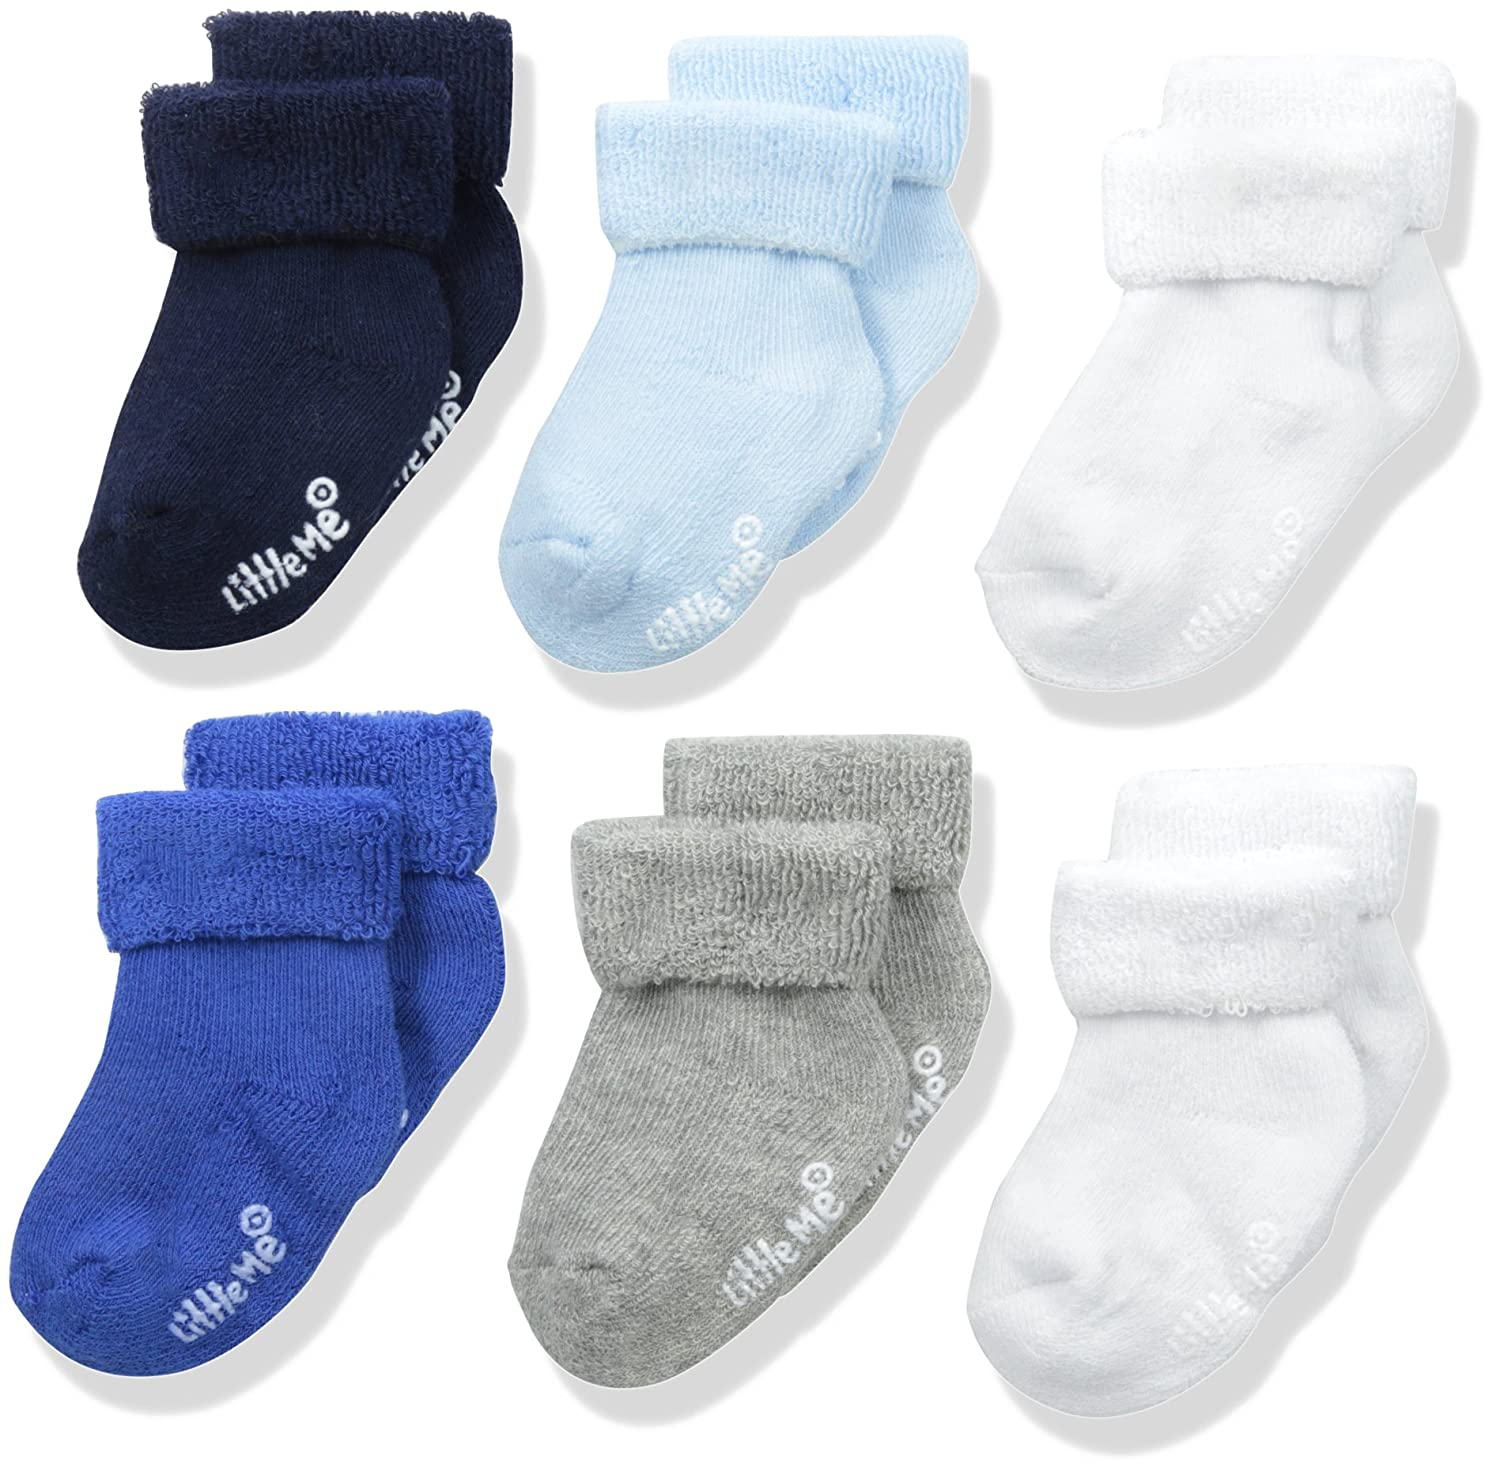 Little Me Baby Boys' 6 Pack Socks Little Me Baby Accessories LM831671S1